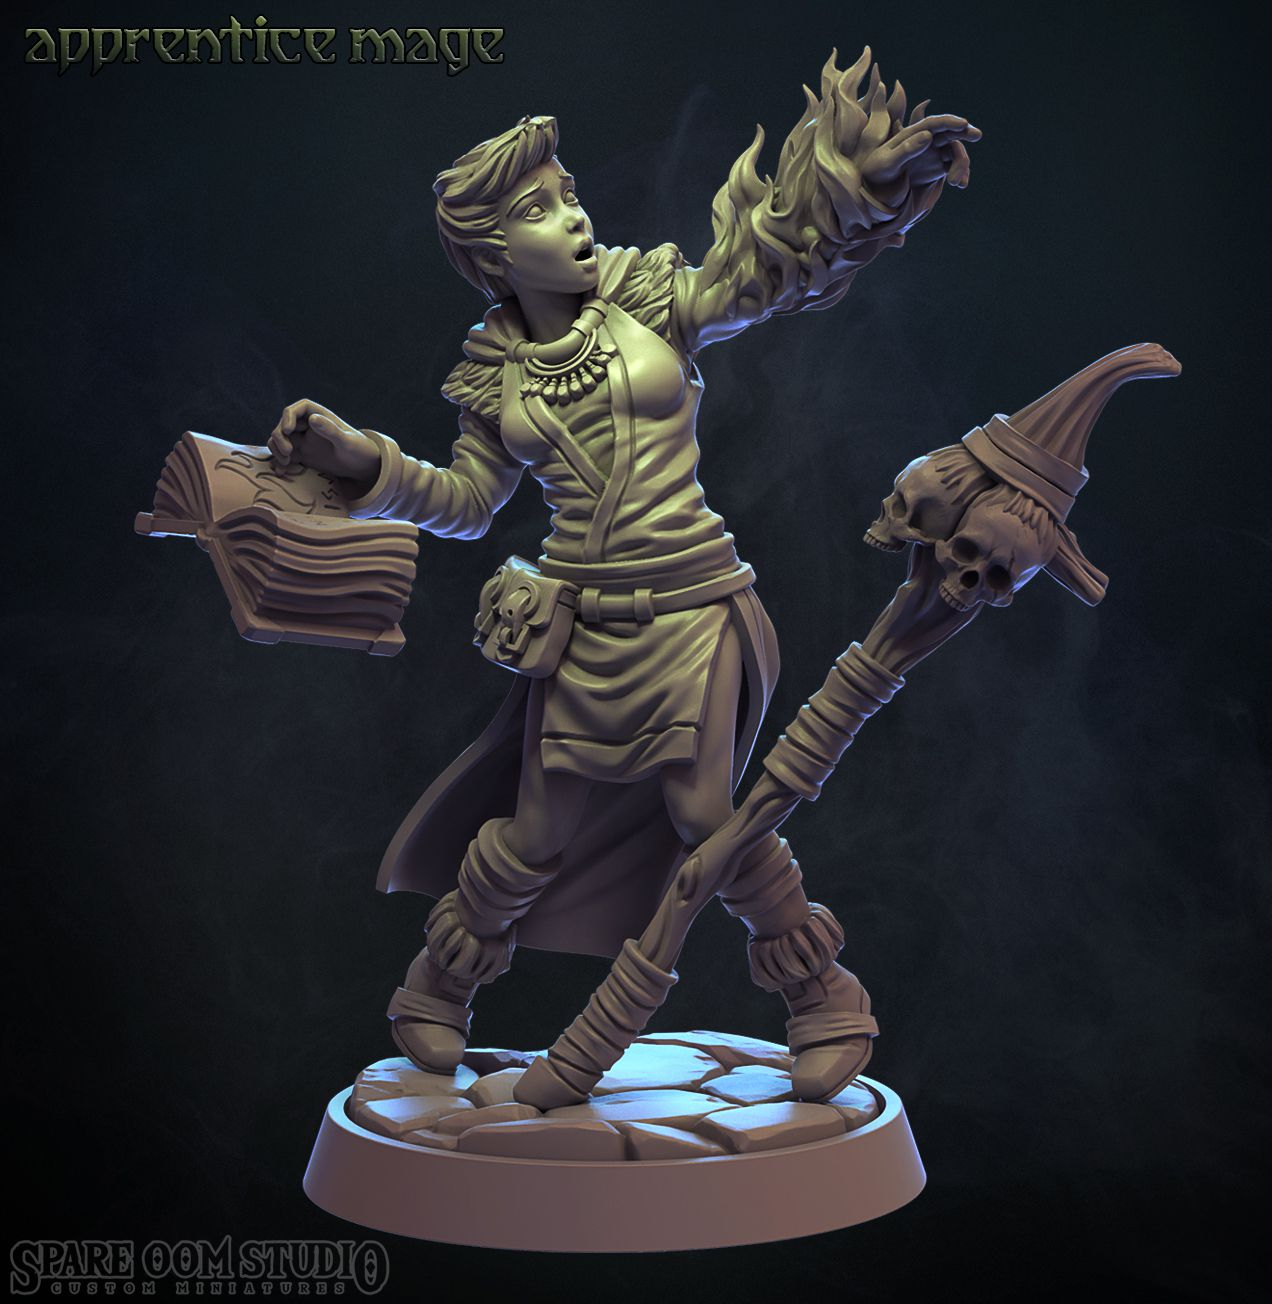 App-mage.jpg Download STL file Apprentice Mage 32mm (Pre-supported) • 3D print object, Spare_Oom_Studio